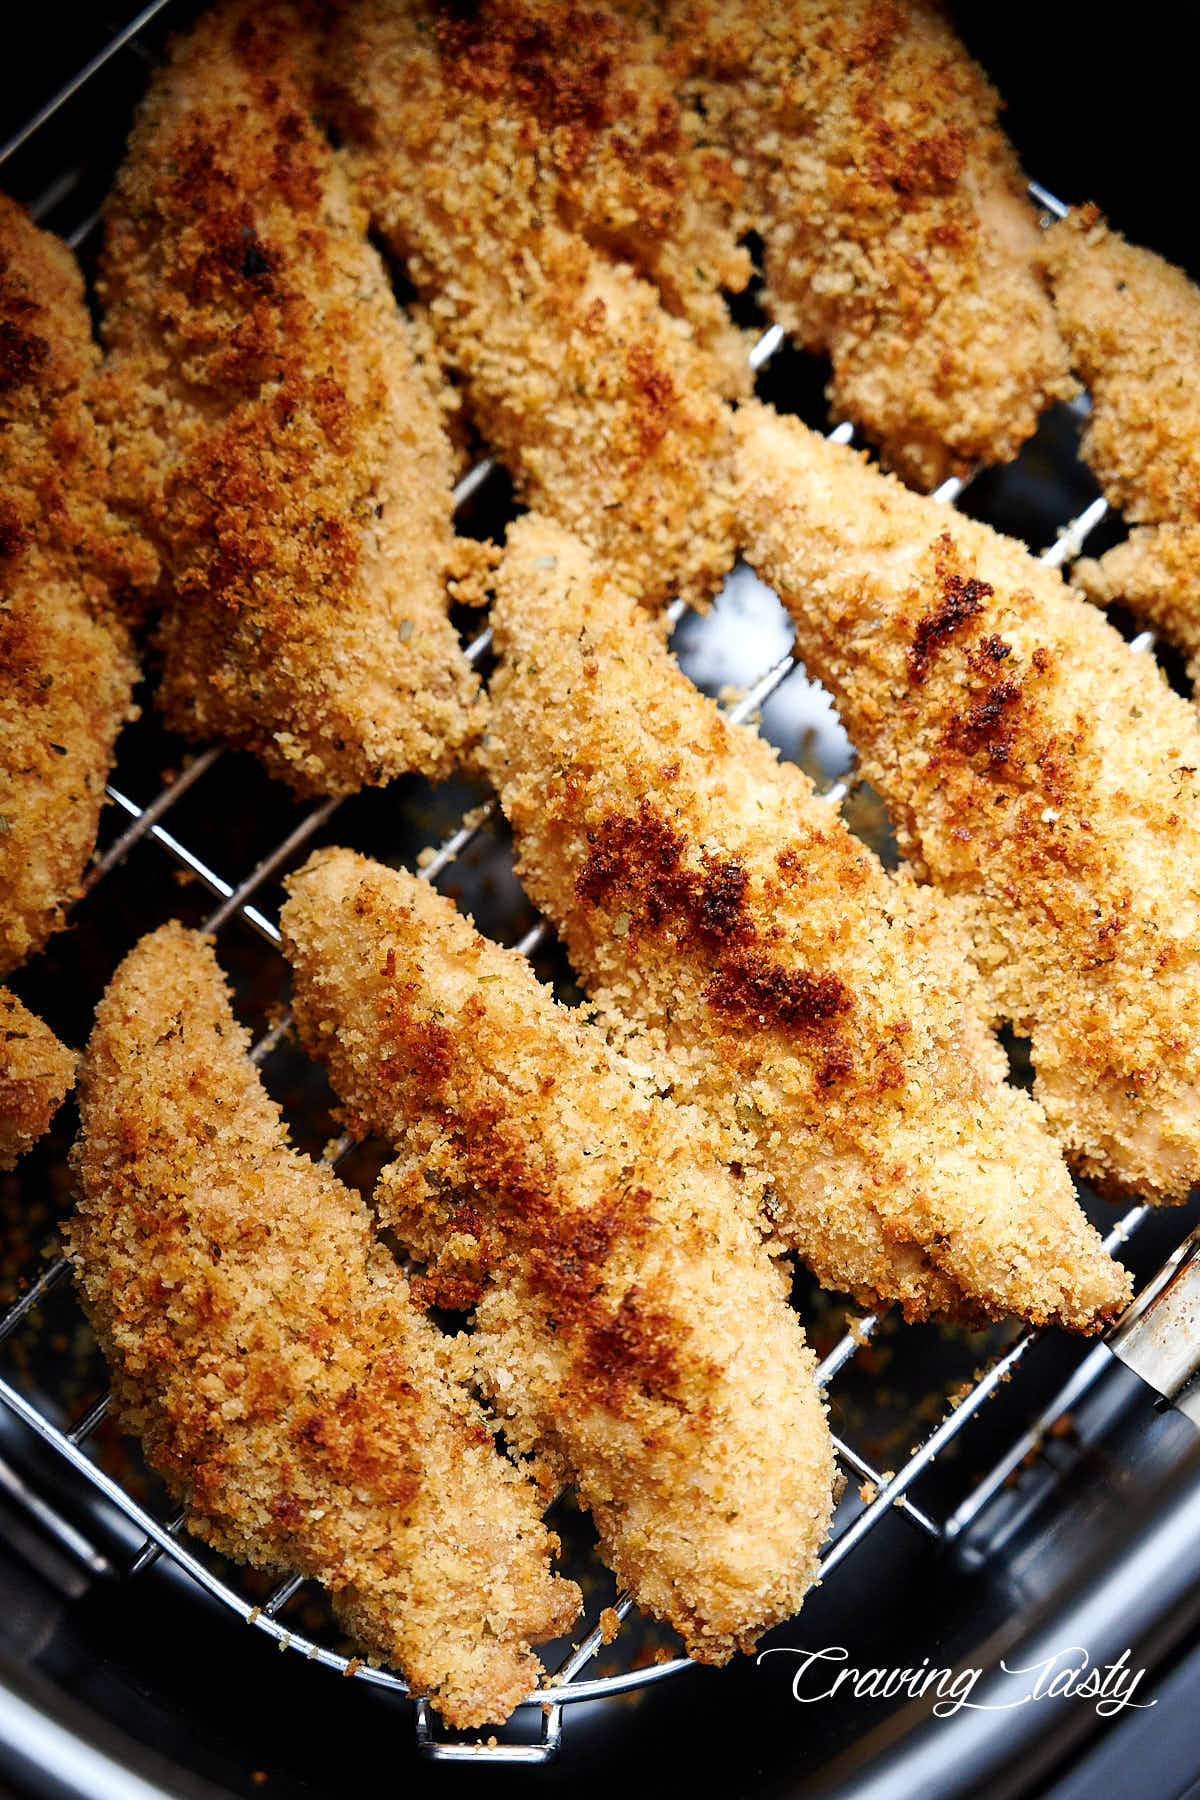 Golden brown chicken tenders inside air fryer.